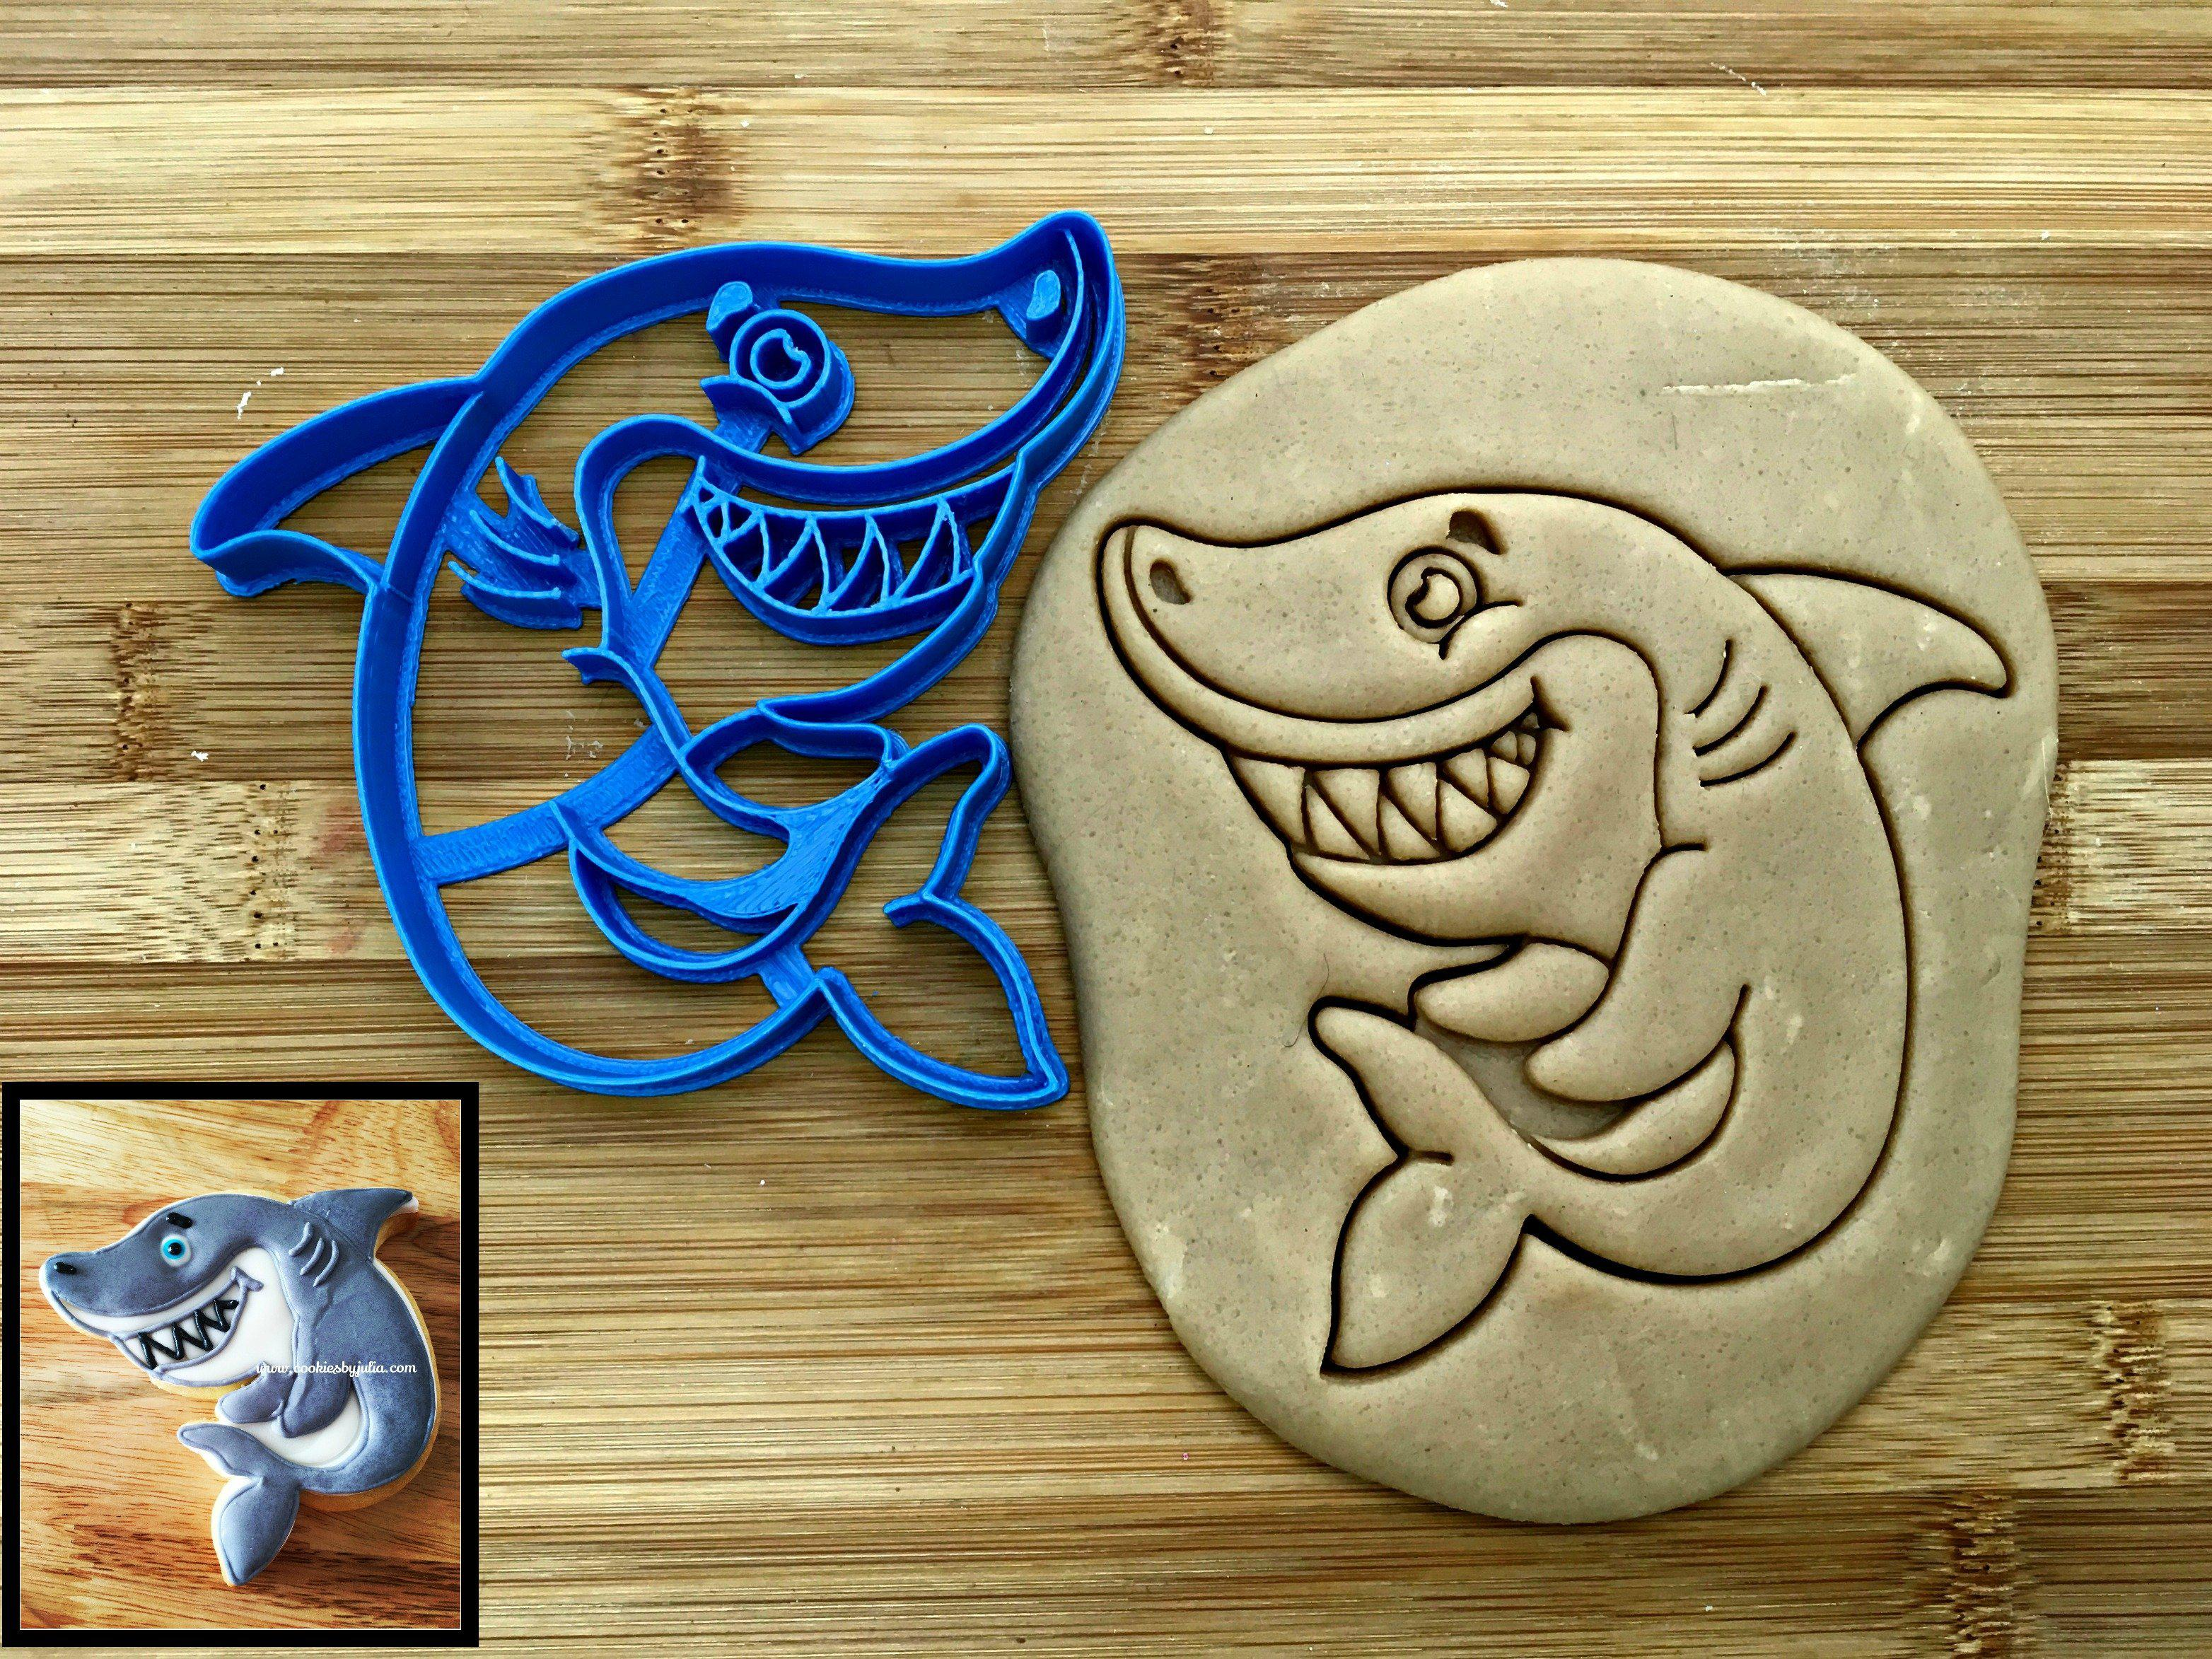 Smiling Shark Cookie Cutter/Dishwasher Safe